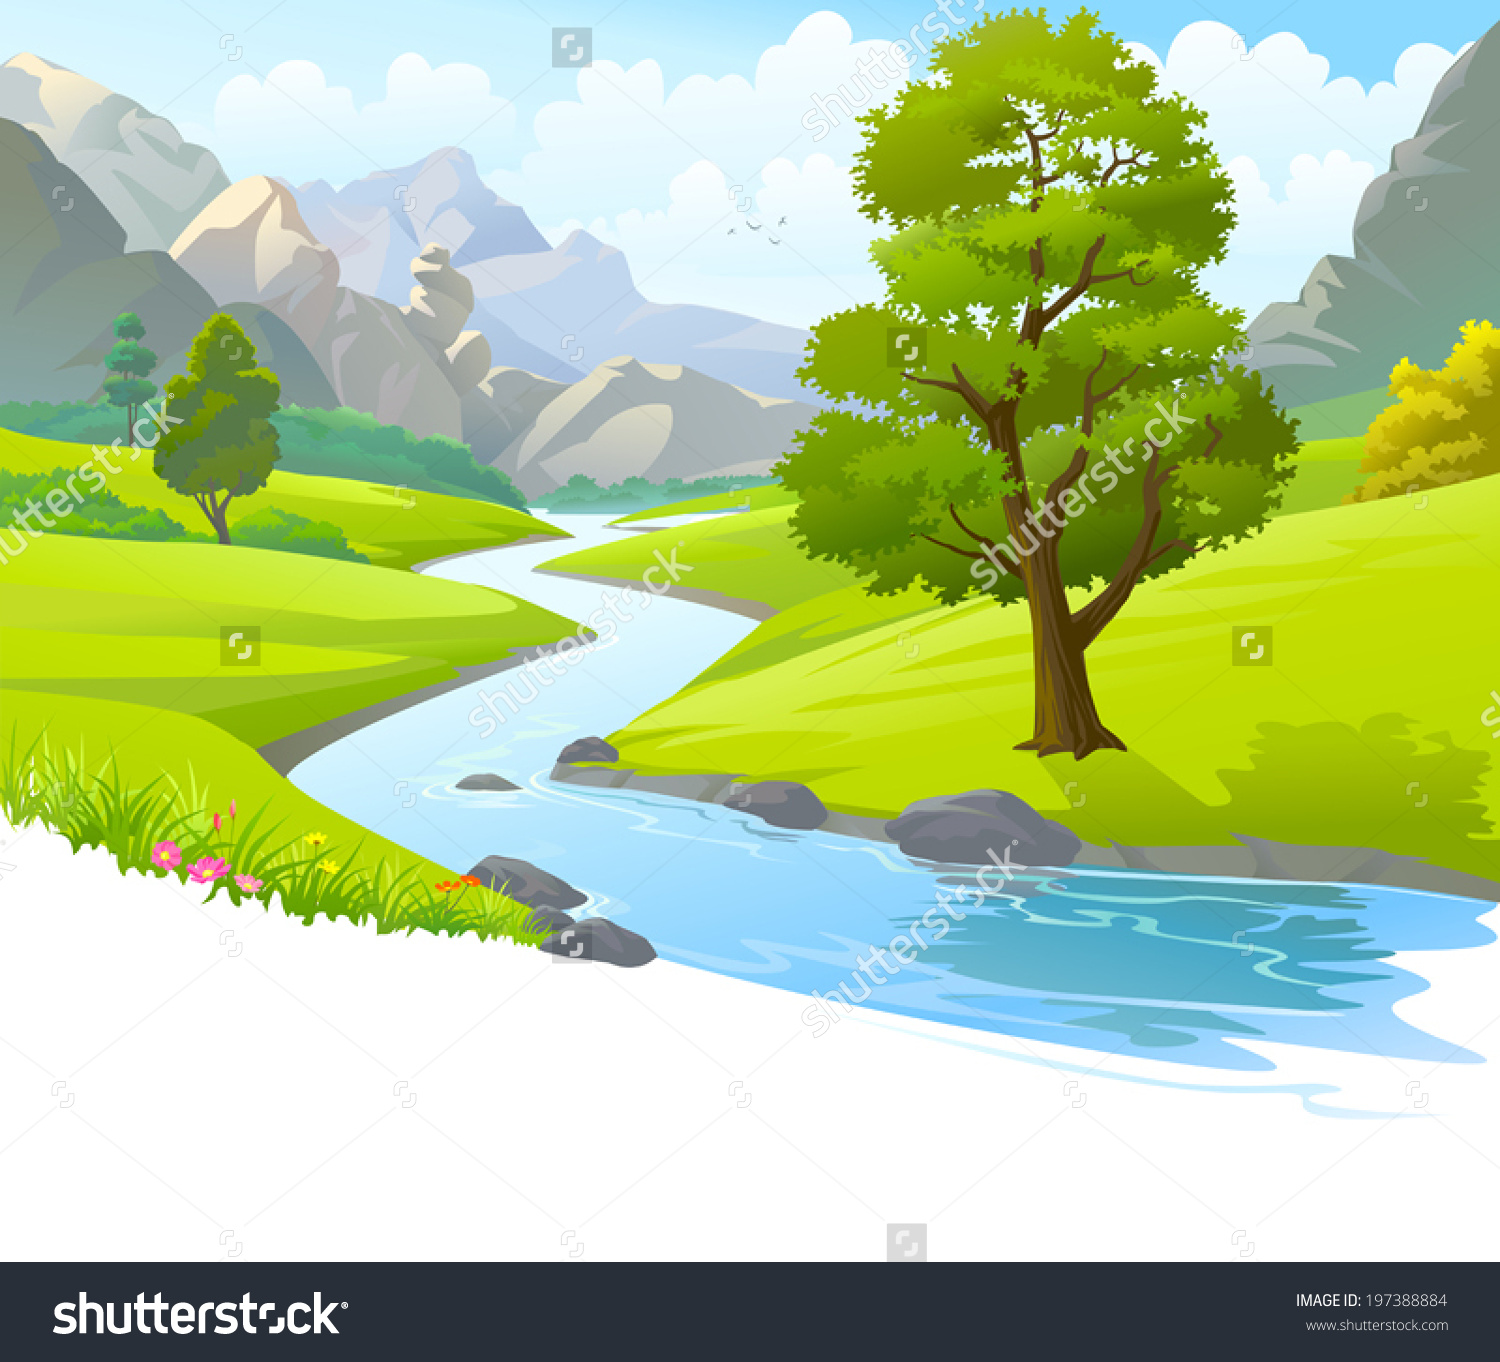 Illustration River Flowing Through Mountains Hills Stock Vector.